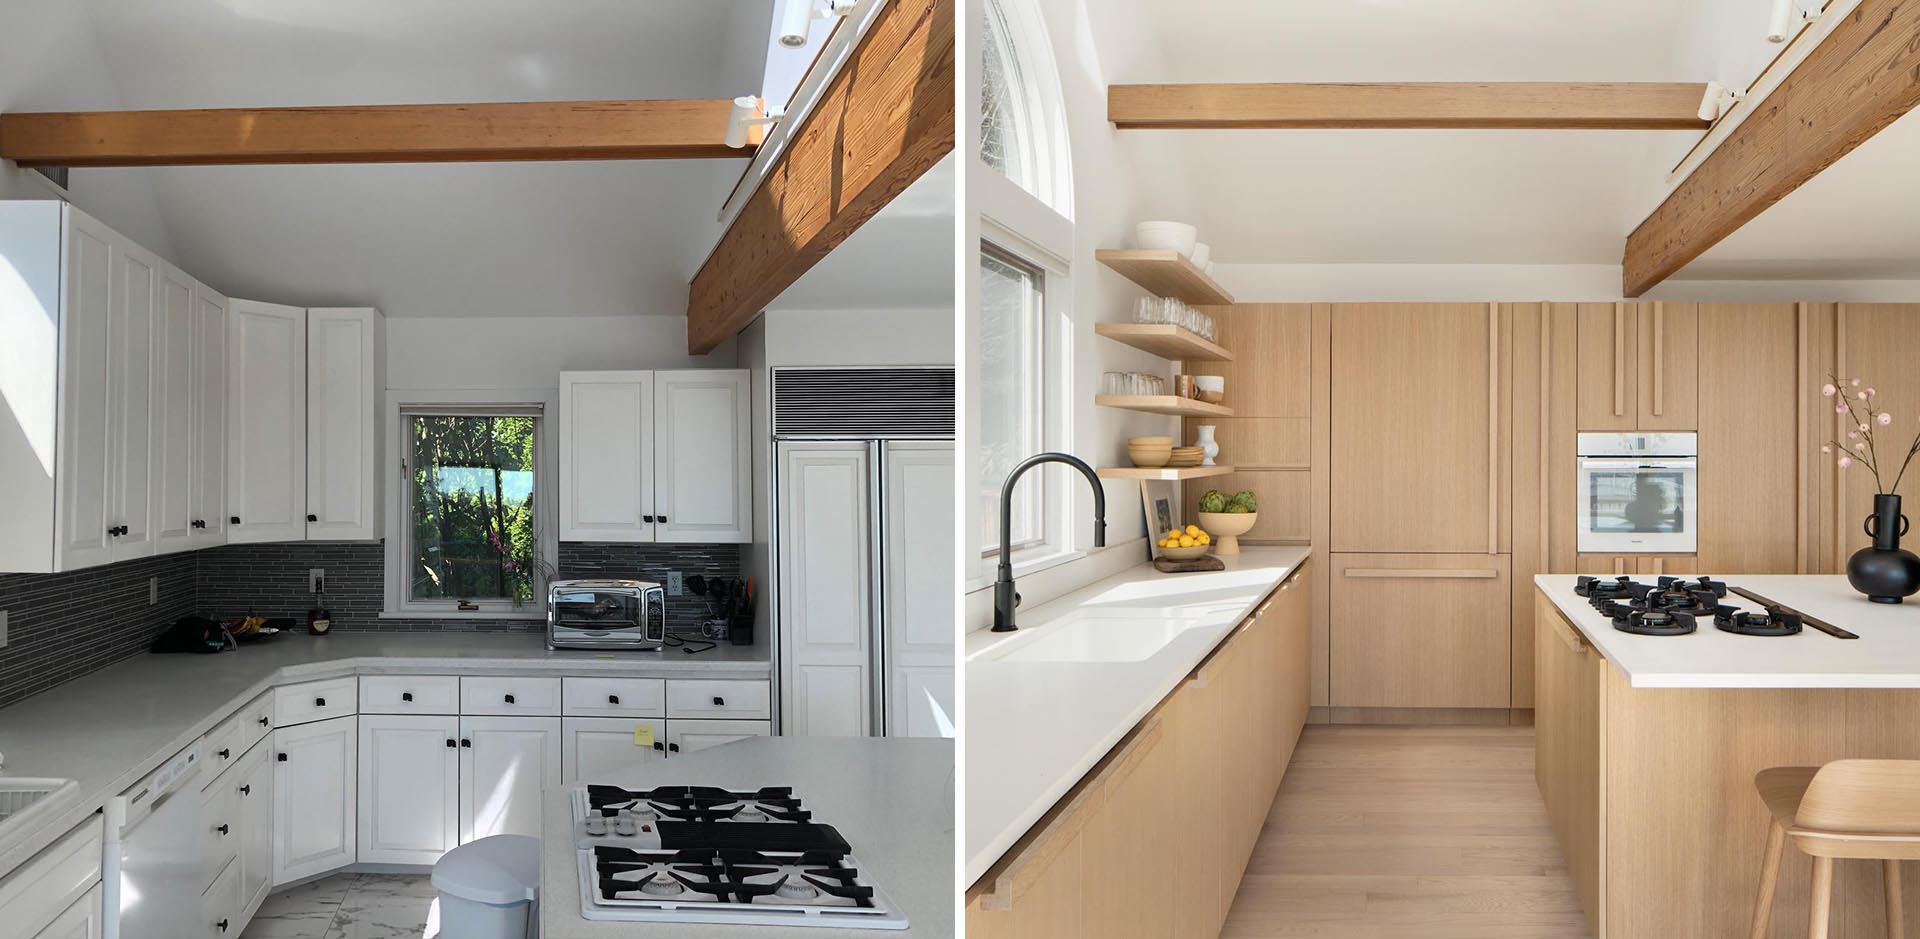 A remodeled kitchen with water-based white rift oak for the cabinets, a large island, and quartz countertops.